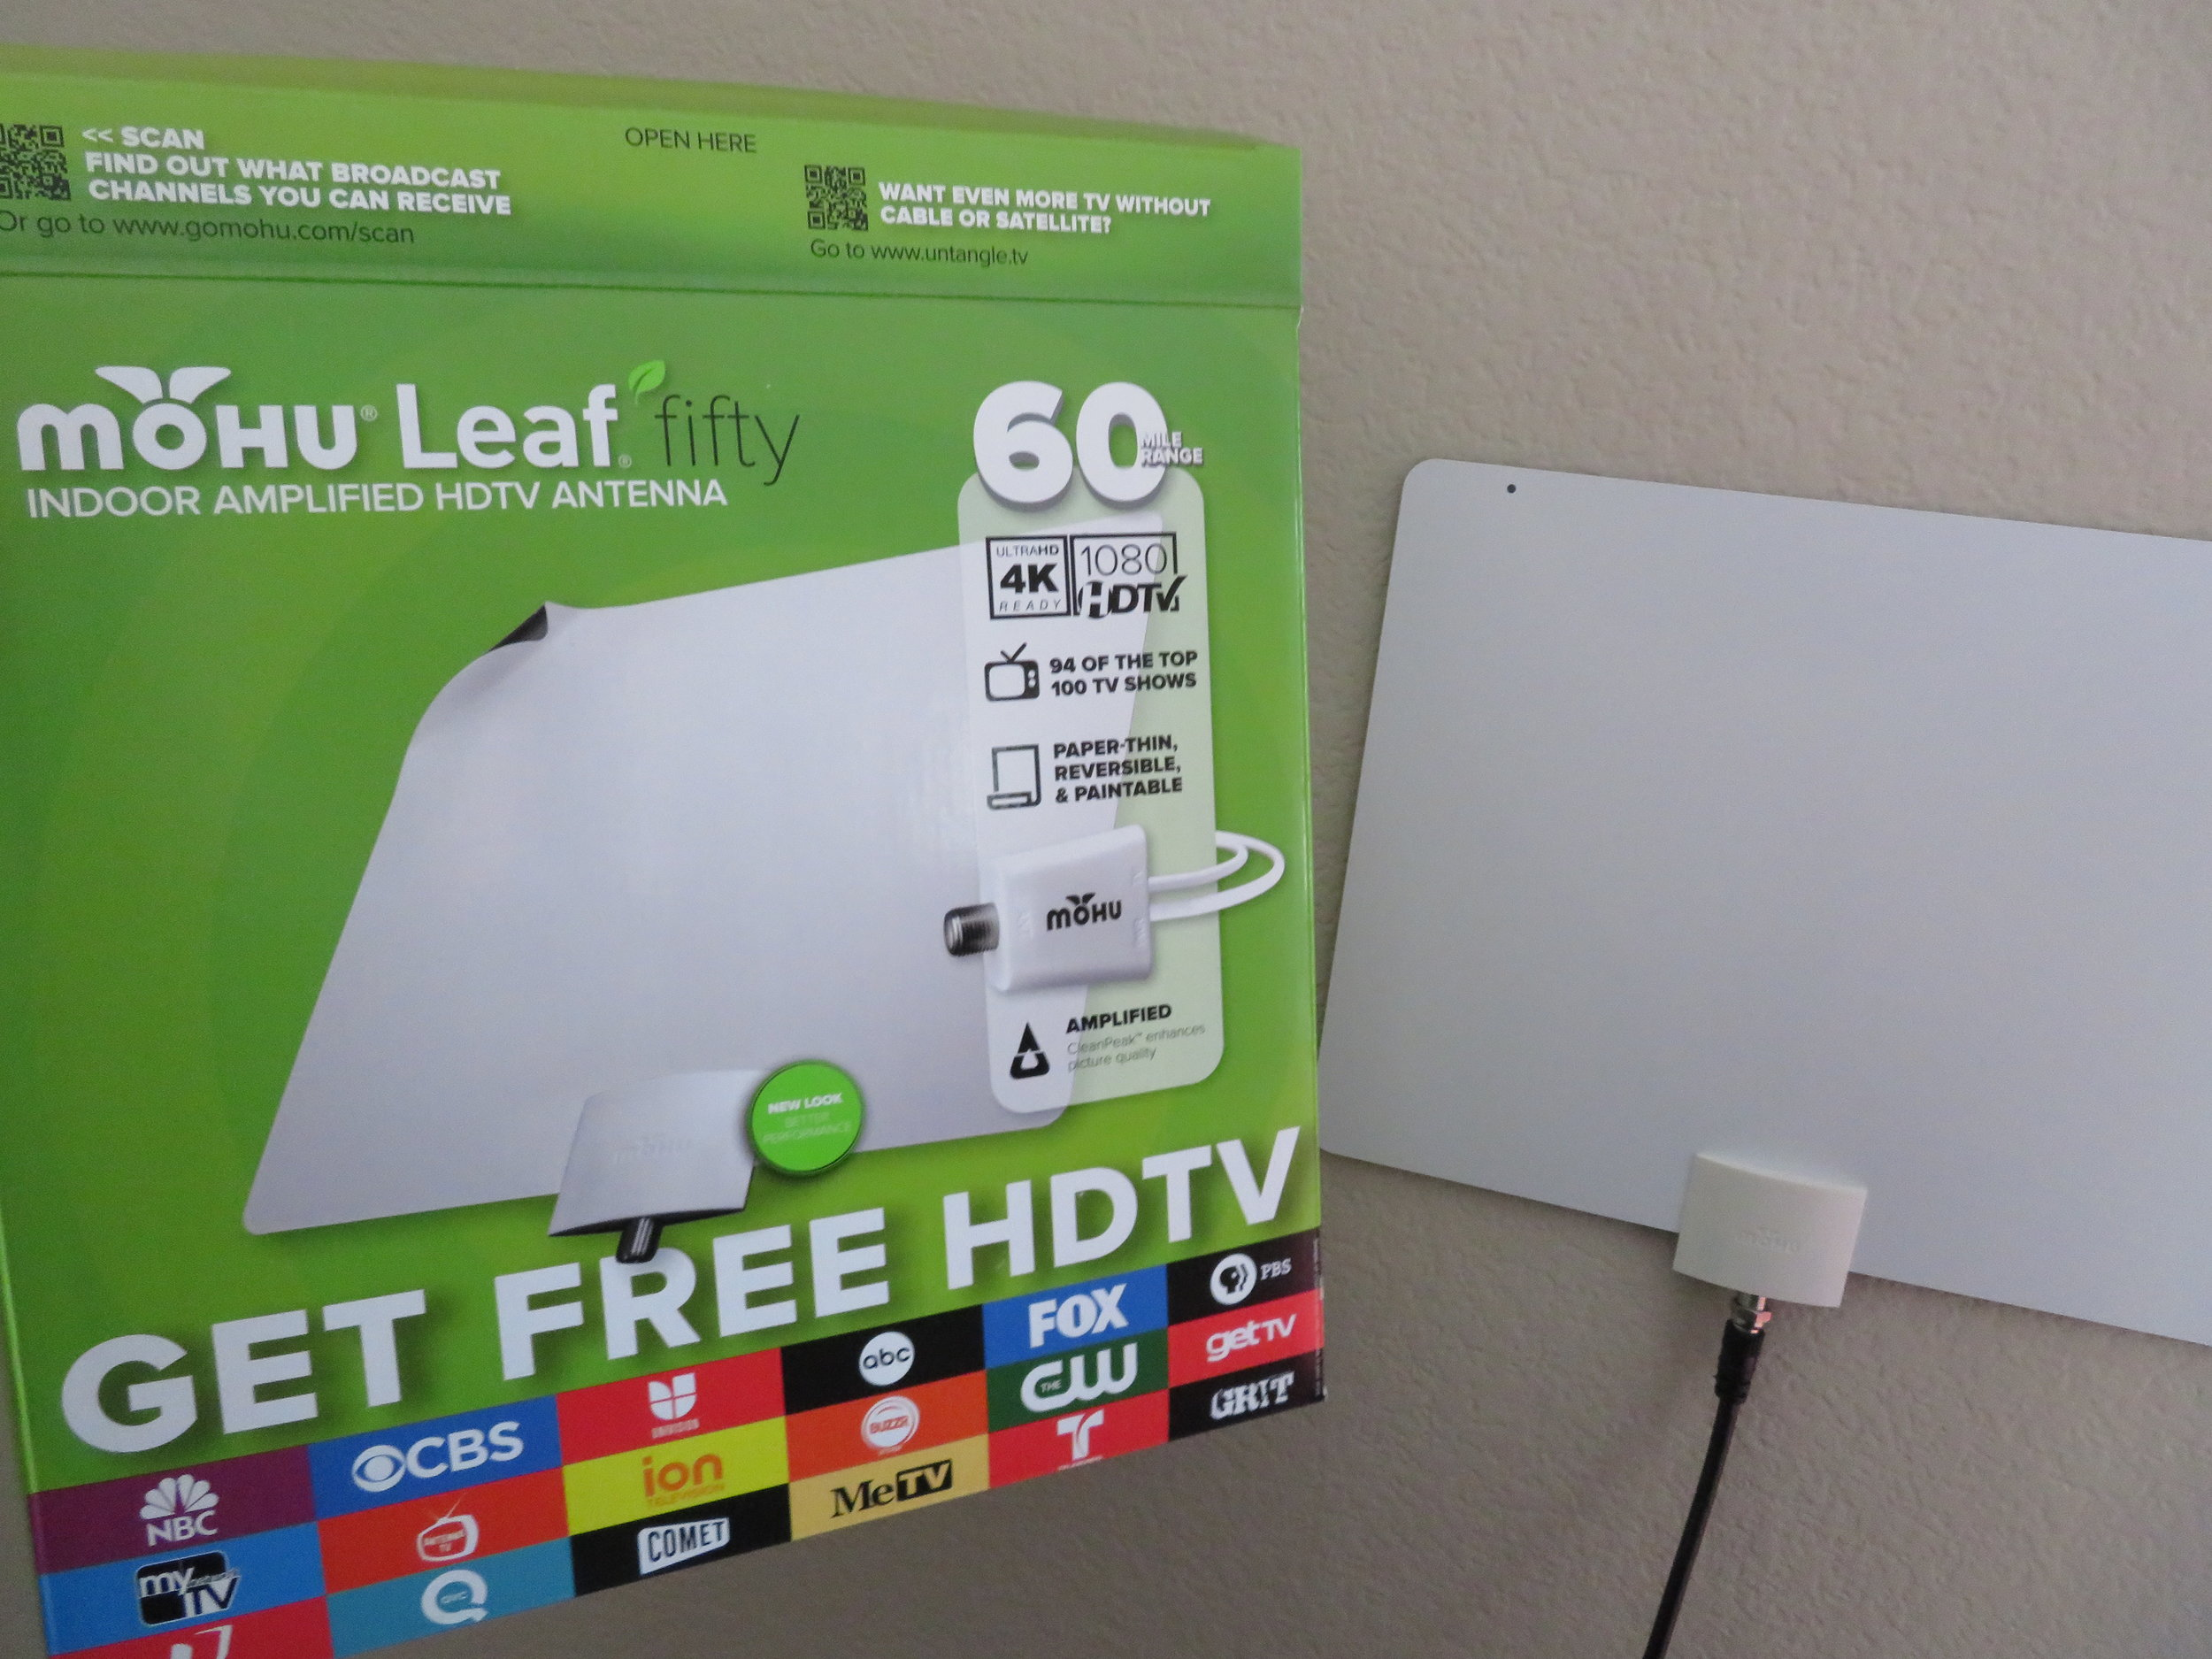 The Mohu Leaf 50 got great reviews AND it works!